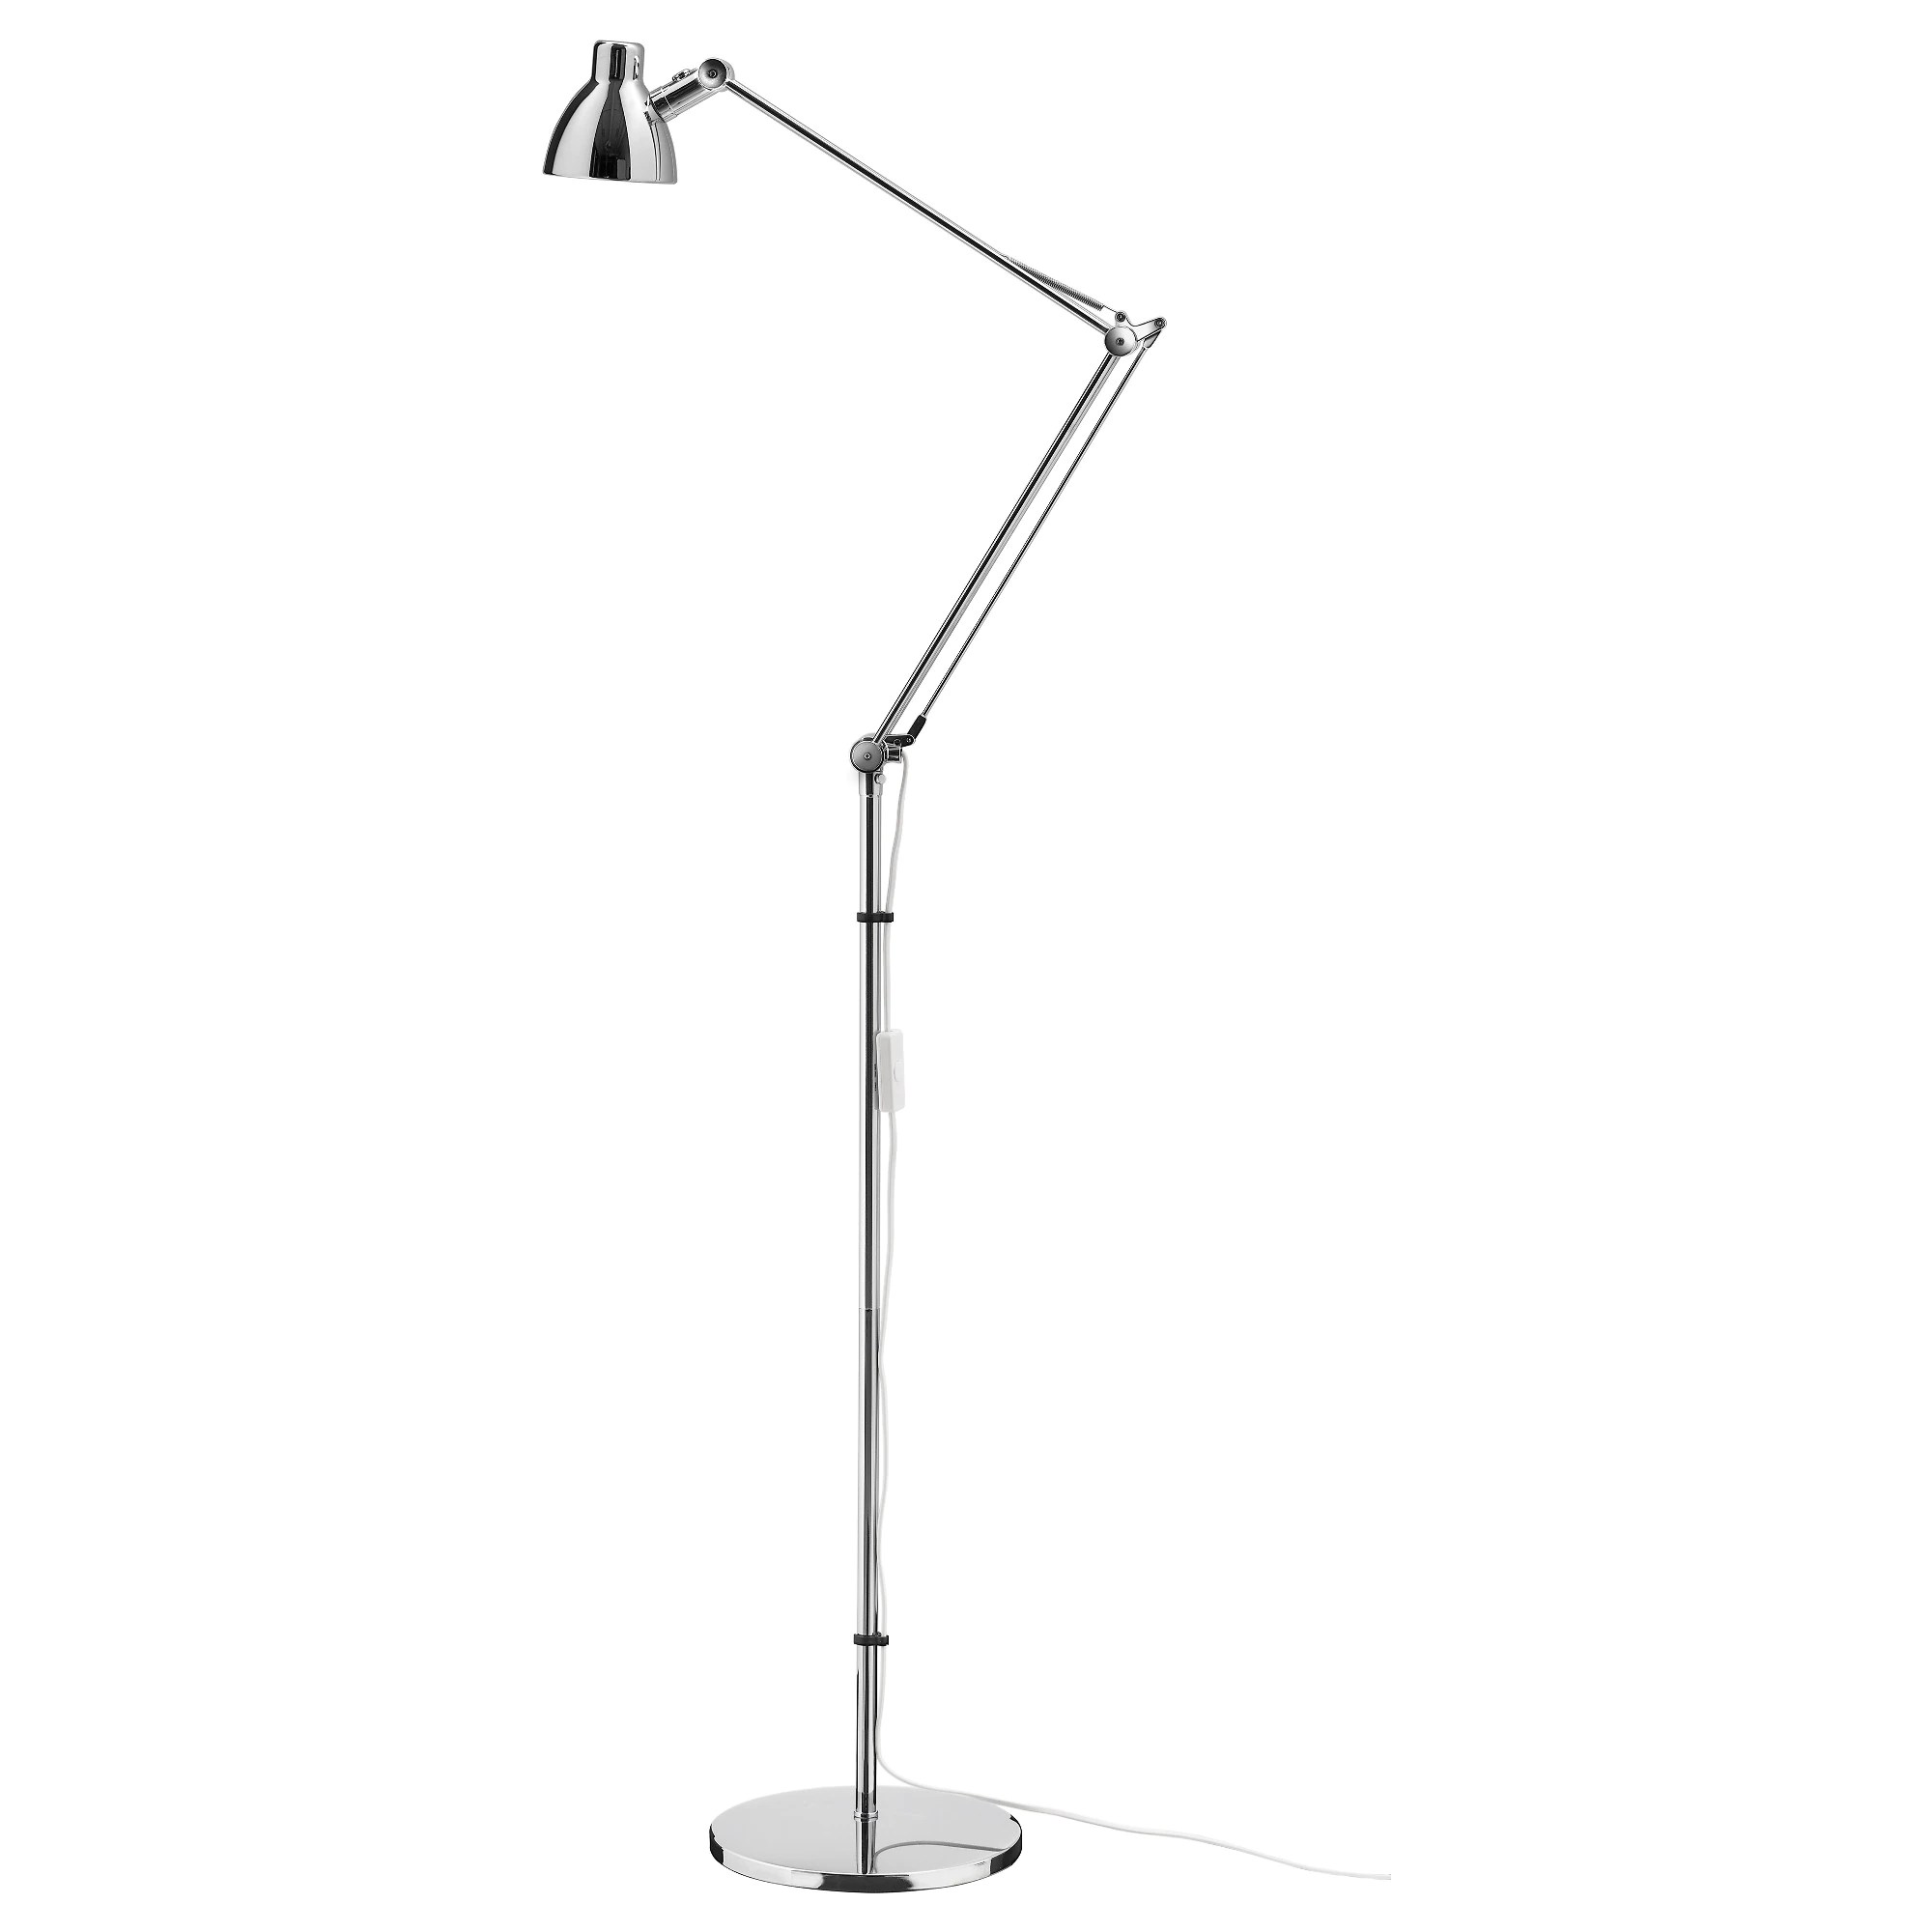 Ikea Reading Lamp Antifoni Floor Reading Lamp Nickel Plated